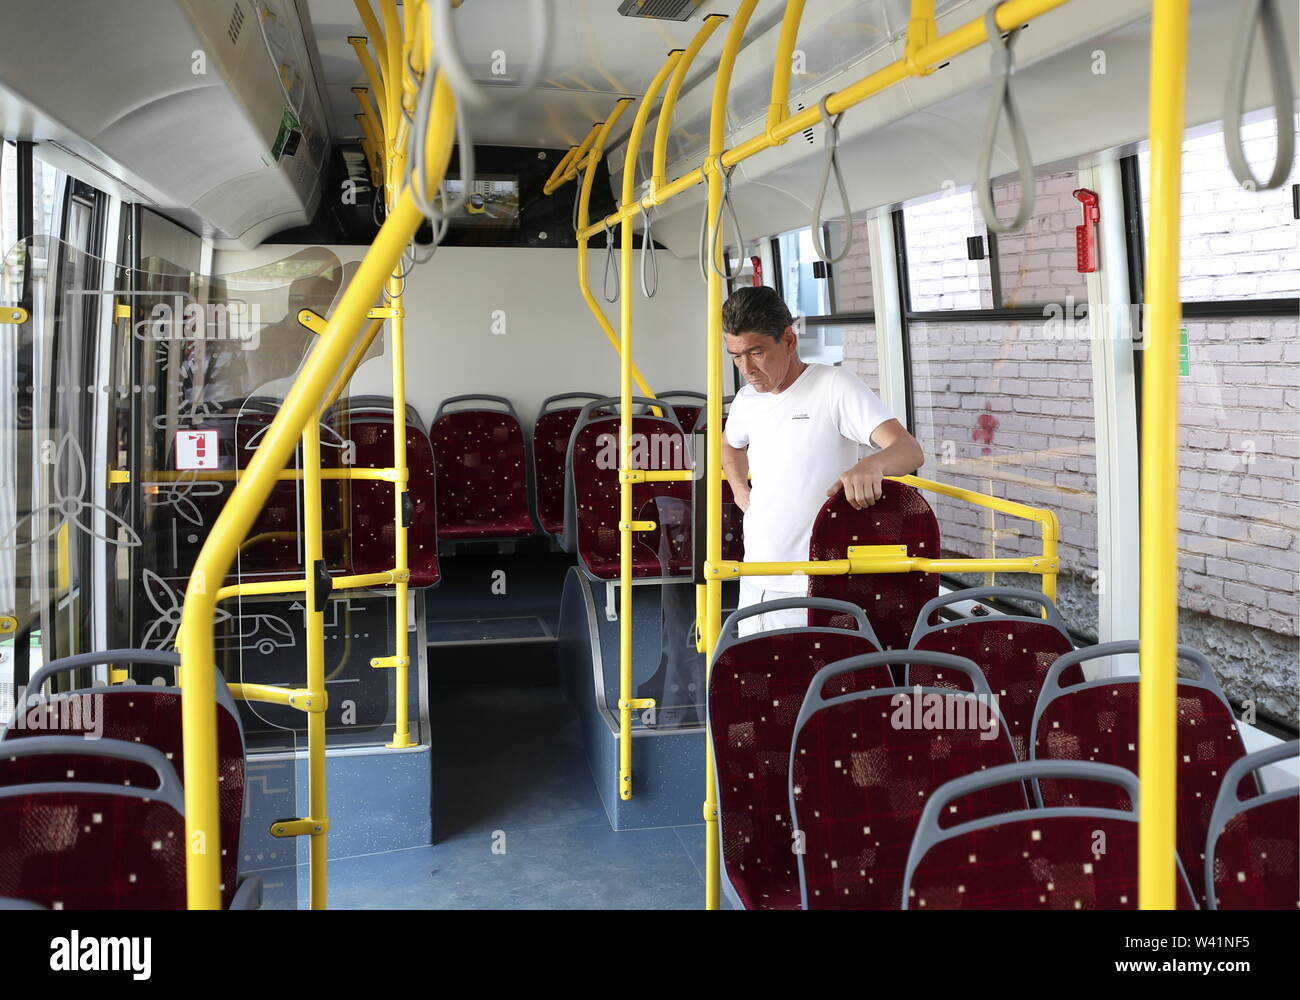 Yekaterinburg, Russia. 19th July, 2019. YEKATERINBURG, RUSSIA - JULY 19, 2019: A passenger in a Belkommunmash electric bus during a test run along Trolleybus Route 1, from Shchorsa Street to a railway station. The bus, manufactured by Belarus' Belkommunmash Company, was displayed at the 2019 Innoprom exhibition. Donat Sorokin/TASS Credit: ITAR-TASS News Agency/Alamy Live News - Stock Image